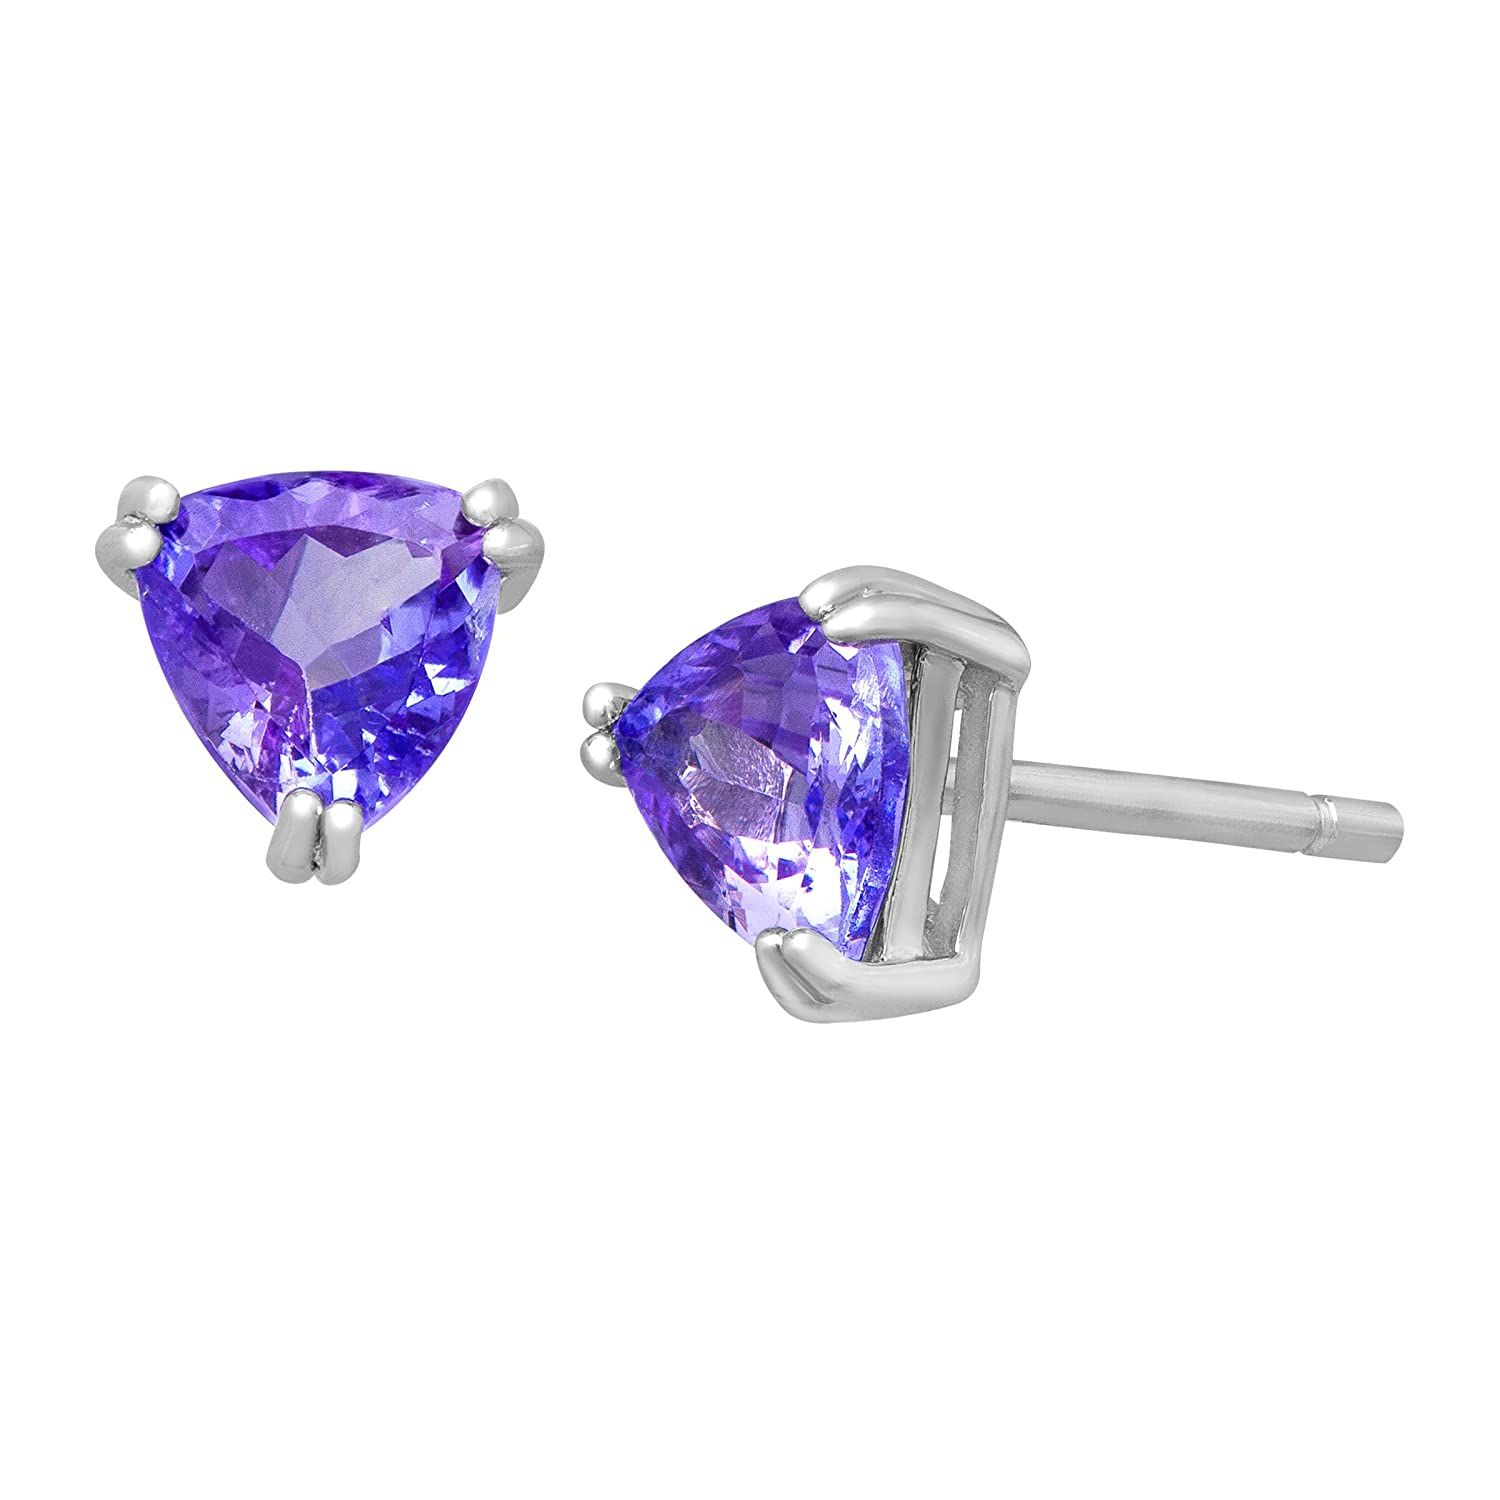 vanna diamonds k pin tanzanite set ring with trillion gelato from cut the collection